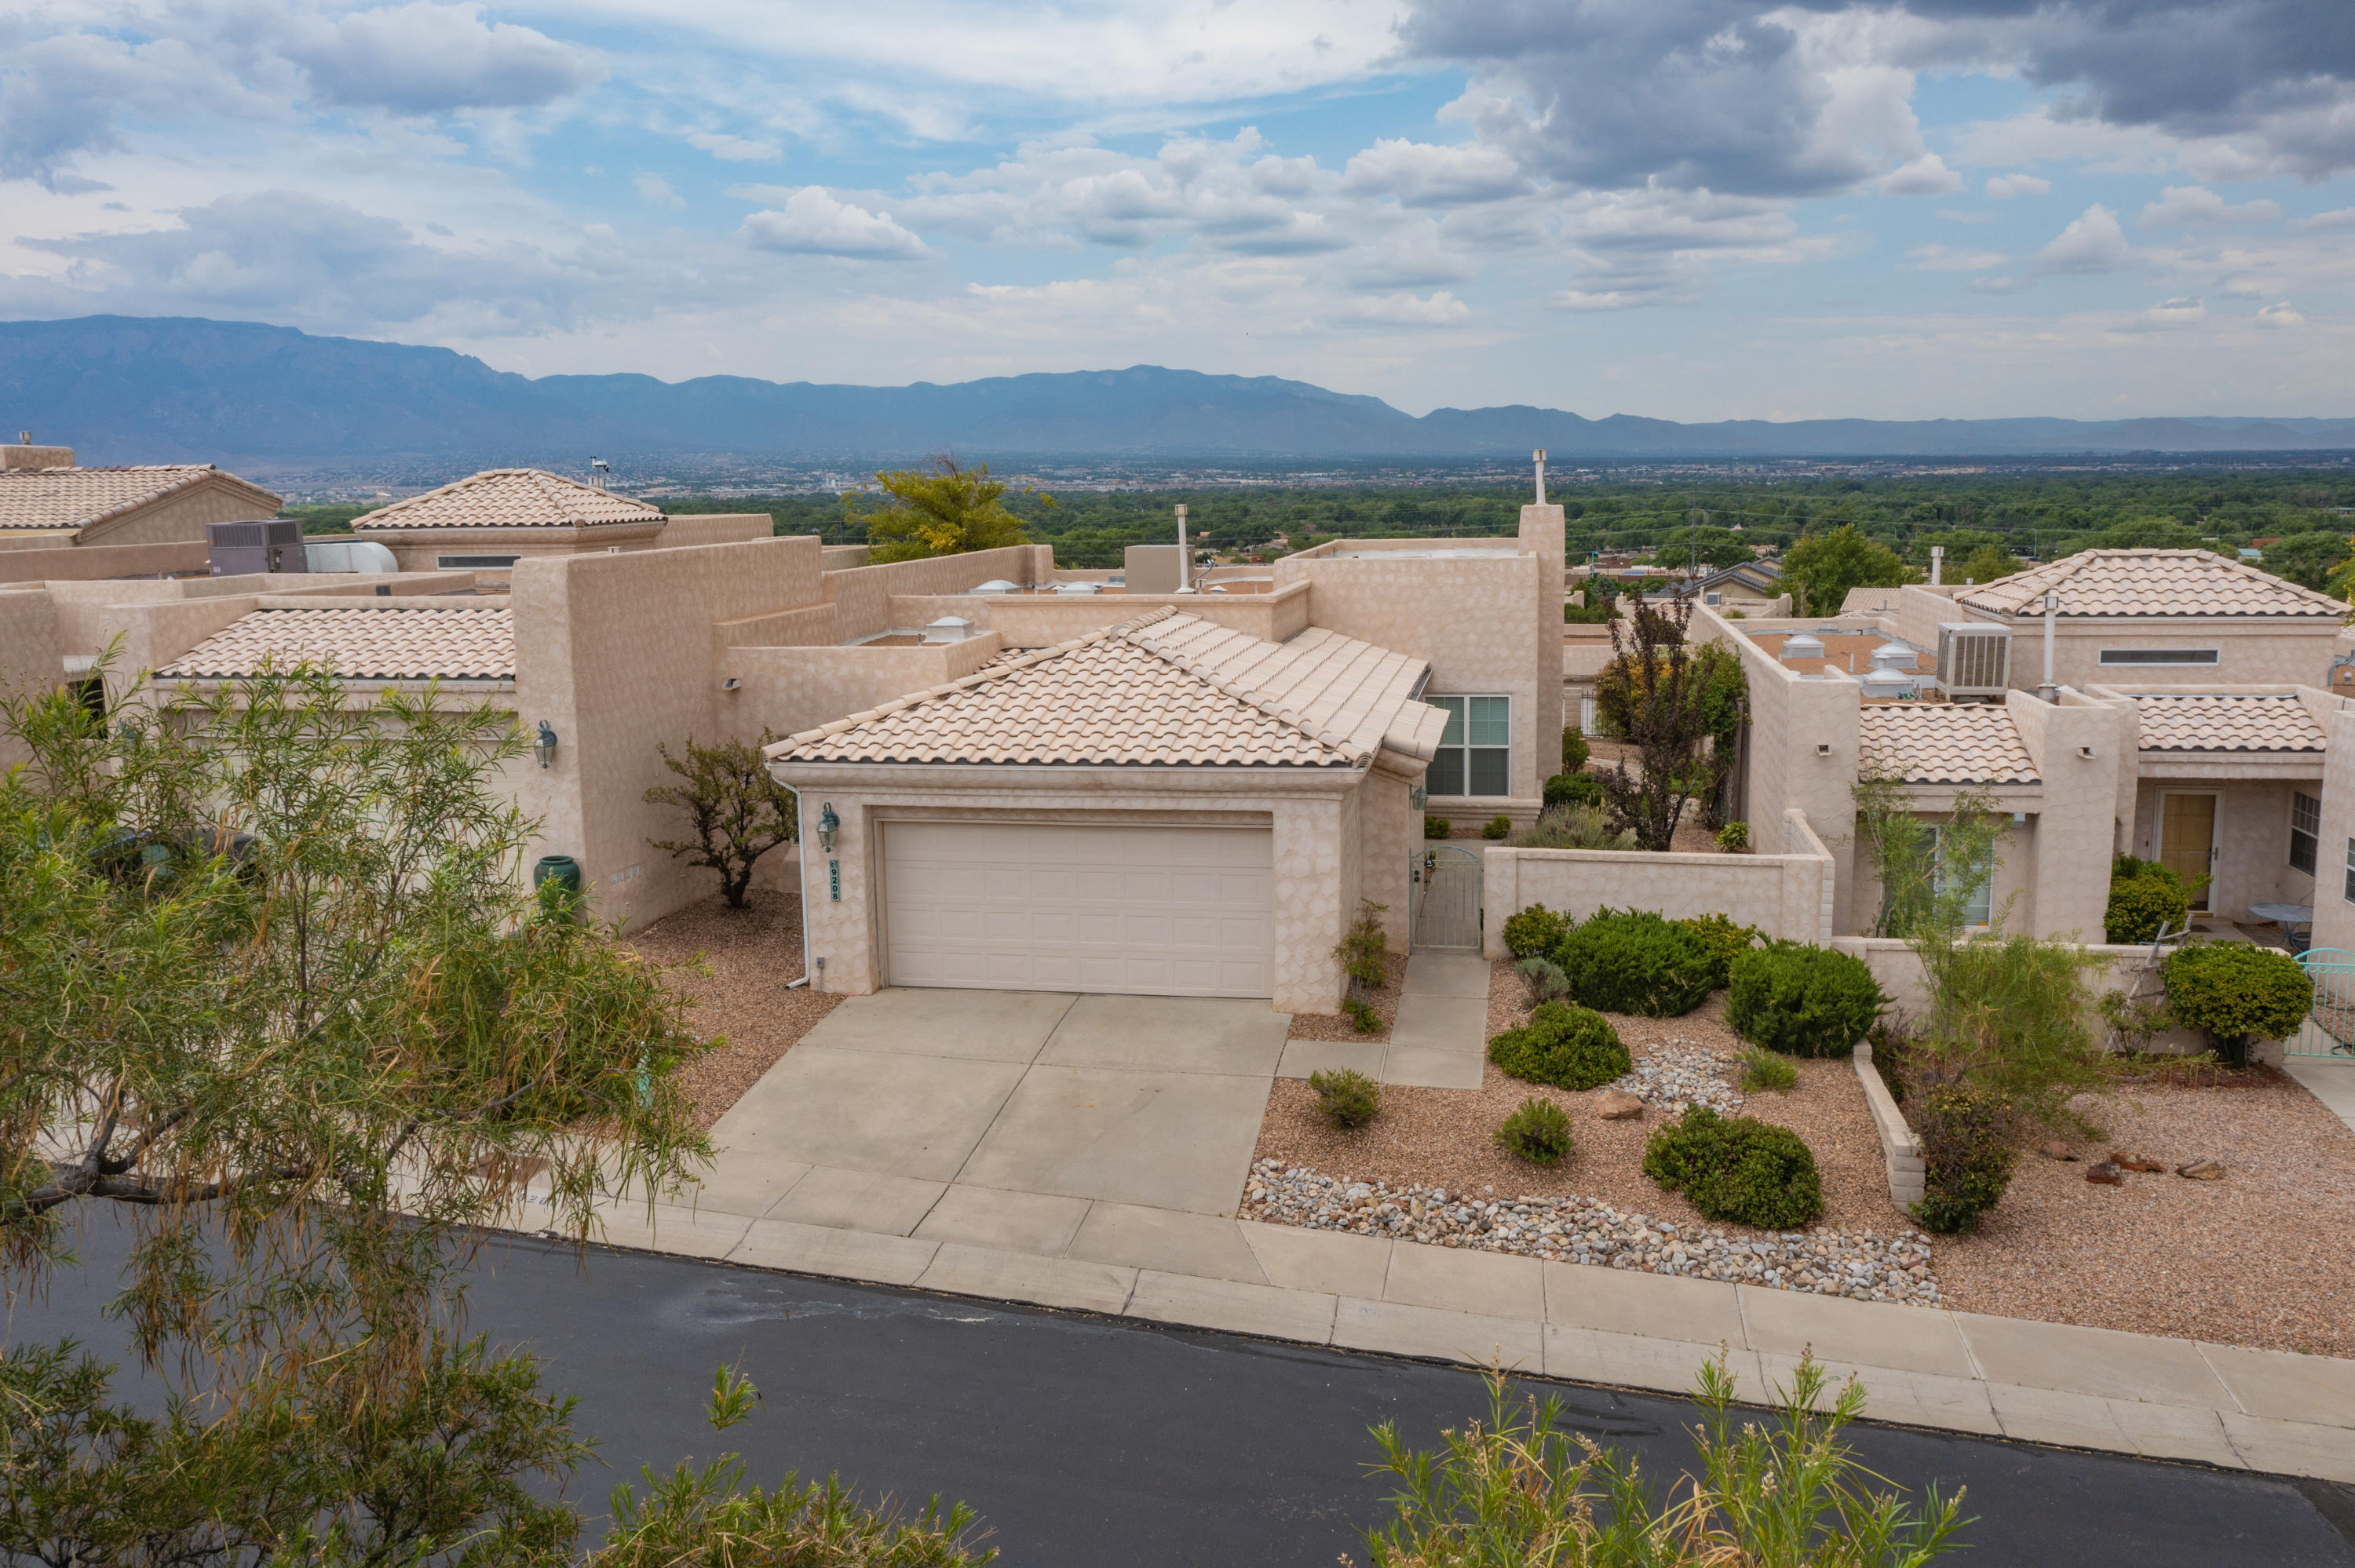 Got Meticulous Gated Community INCREDIBLE VIEWS from Inside  Home and Back Patio of Bosque, City, Sandia Mountains? Well maintained ONE Owner Home? Fresh Paint? New Carpet?  Well You Can Now!!! Do not delay, View the pictures and Virtual Tour then schedule your showing TODAY!!!